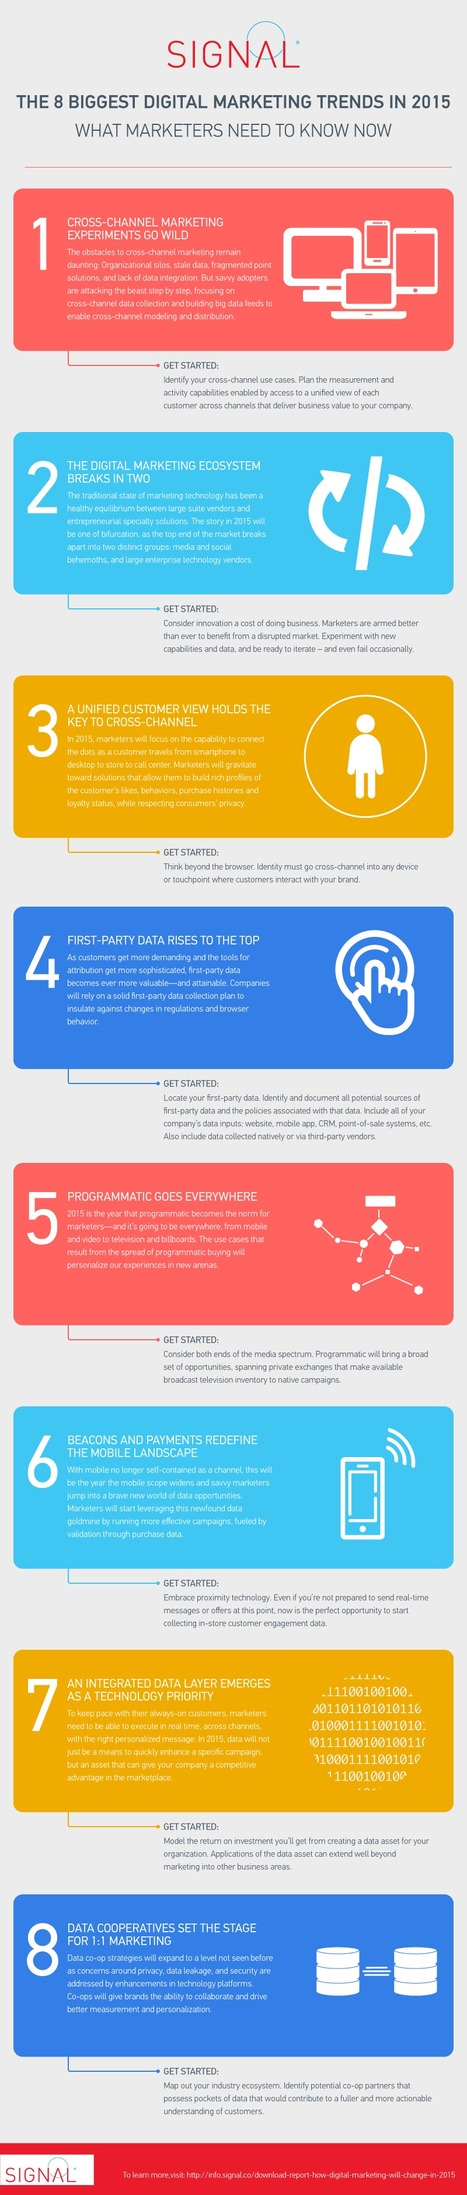 8 Advanced Trends In Social And Digital Marketing (Infographic) | Digital Brand Marketing | Scoop.it